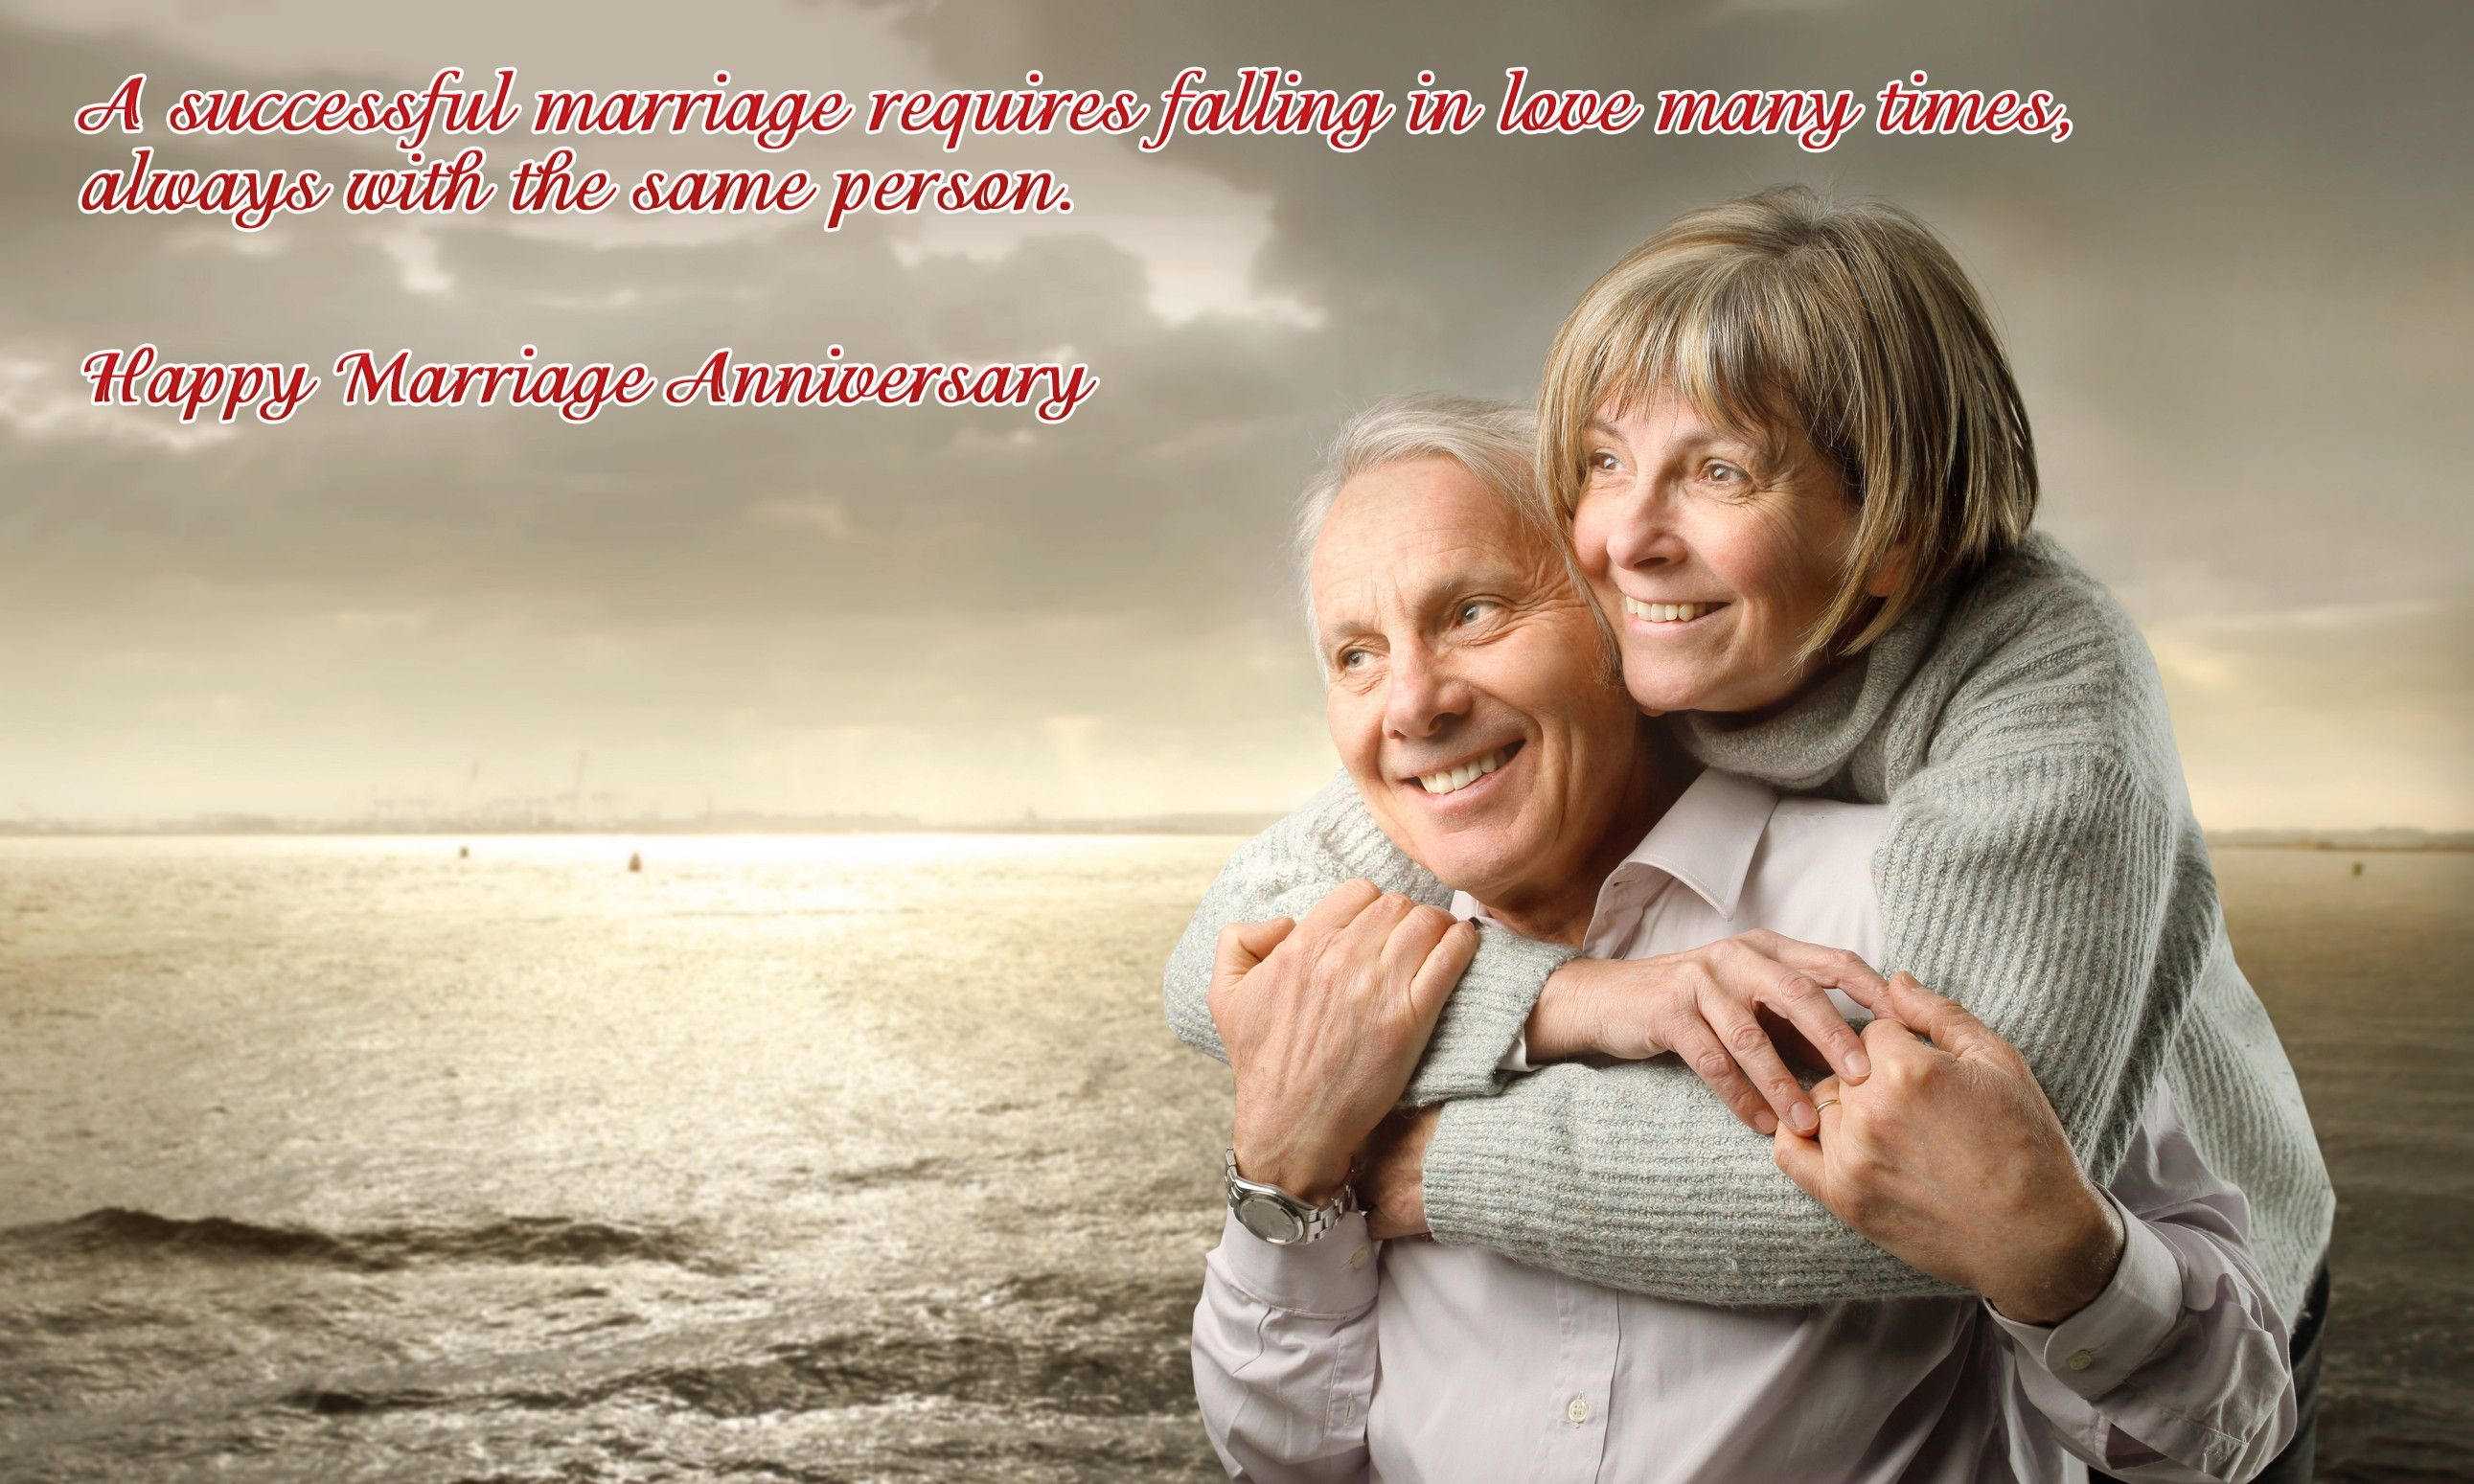 Anniversary quotes marriage anniversary happy marriage